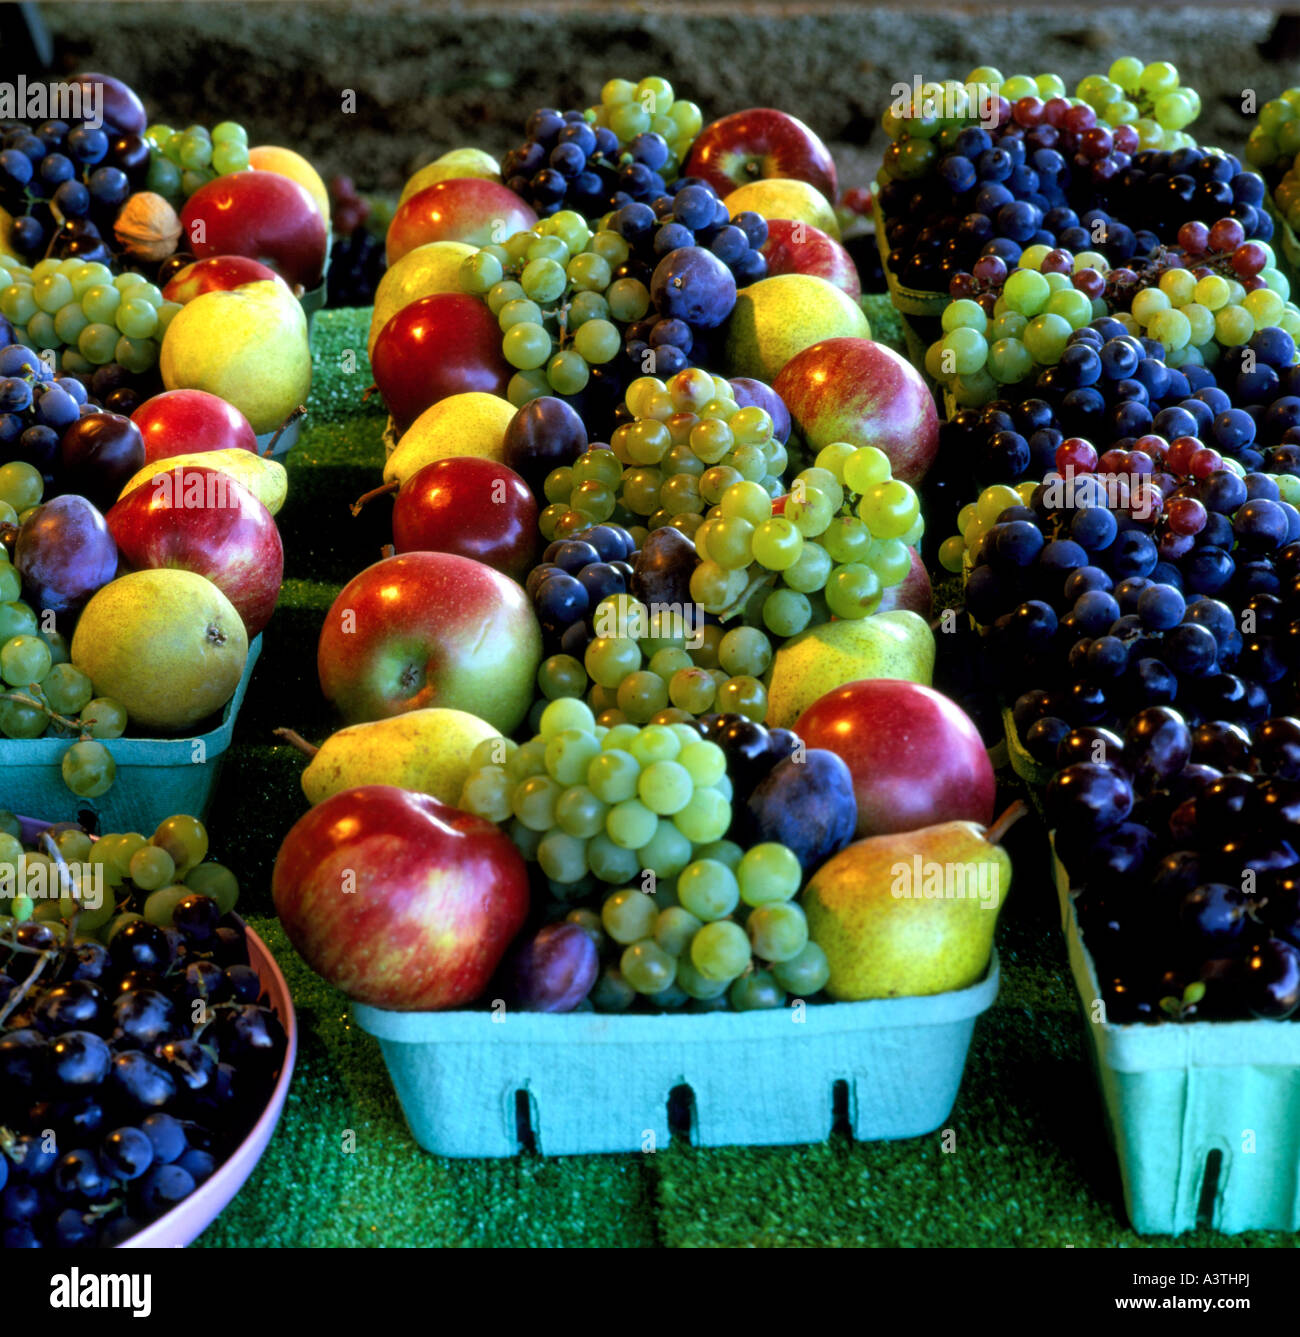 Locally Grown Fruit At Farm Stand, Town Of North East, Pennsylvania, - Stock Image